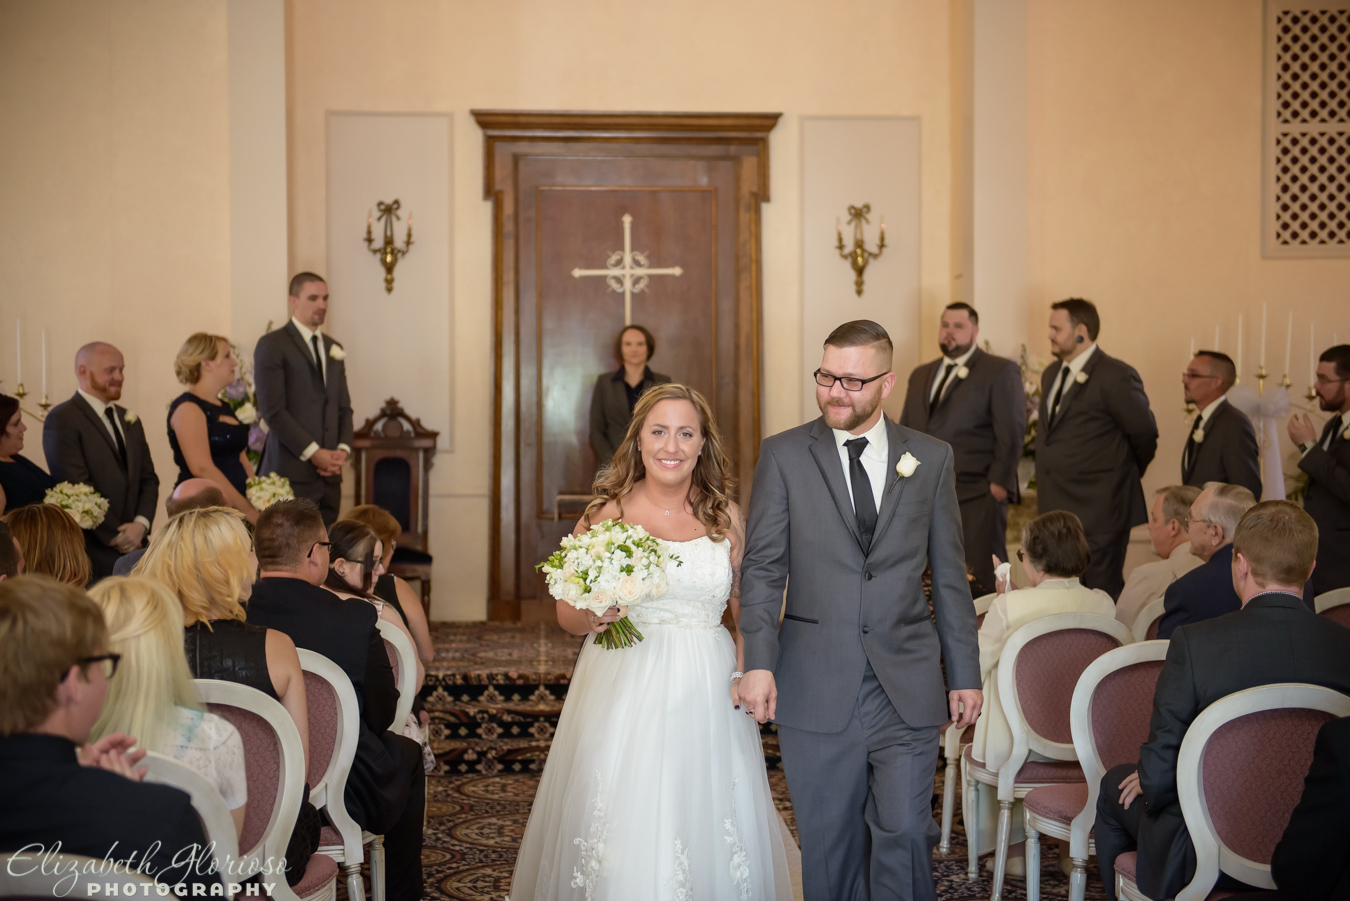 Zakovec_Wedding_Glorioso_Photography_Cleveland-122